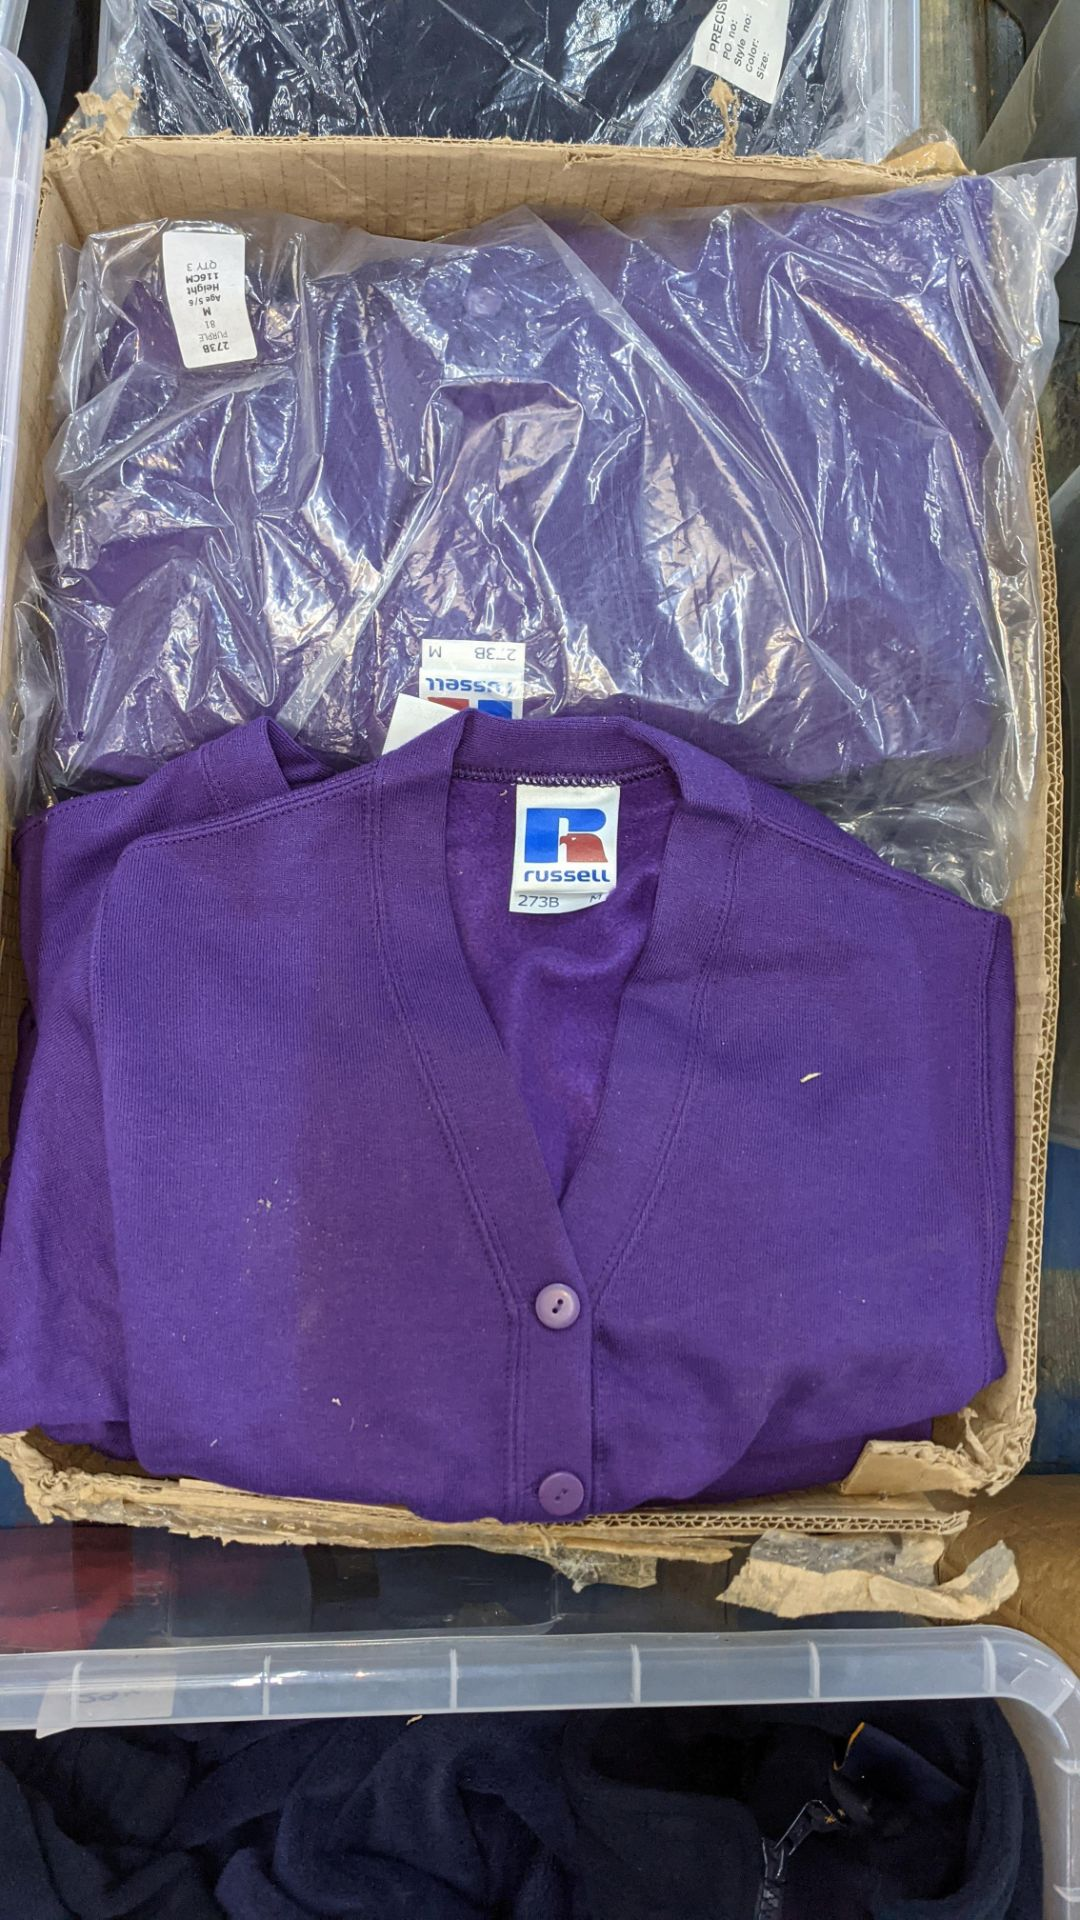 Quantity of Russell children's purple button up sweat tops - 1 large box - Image 3 of 4